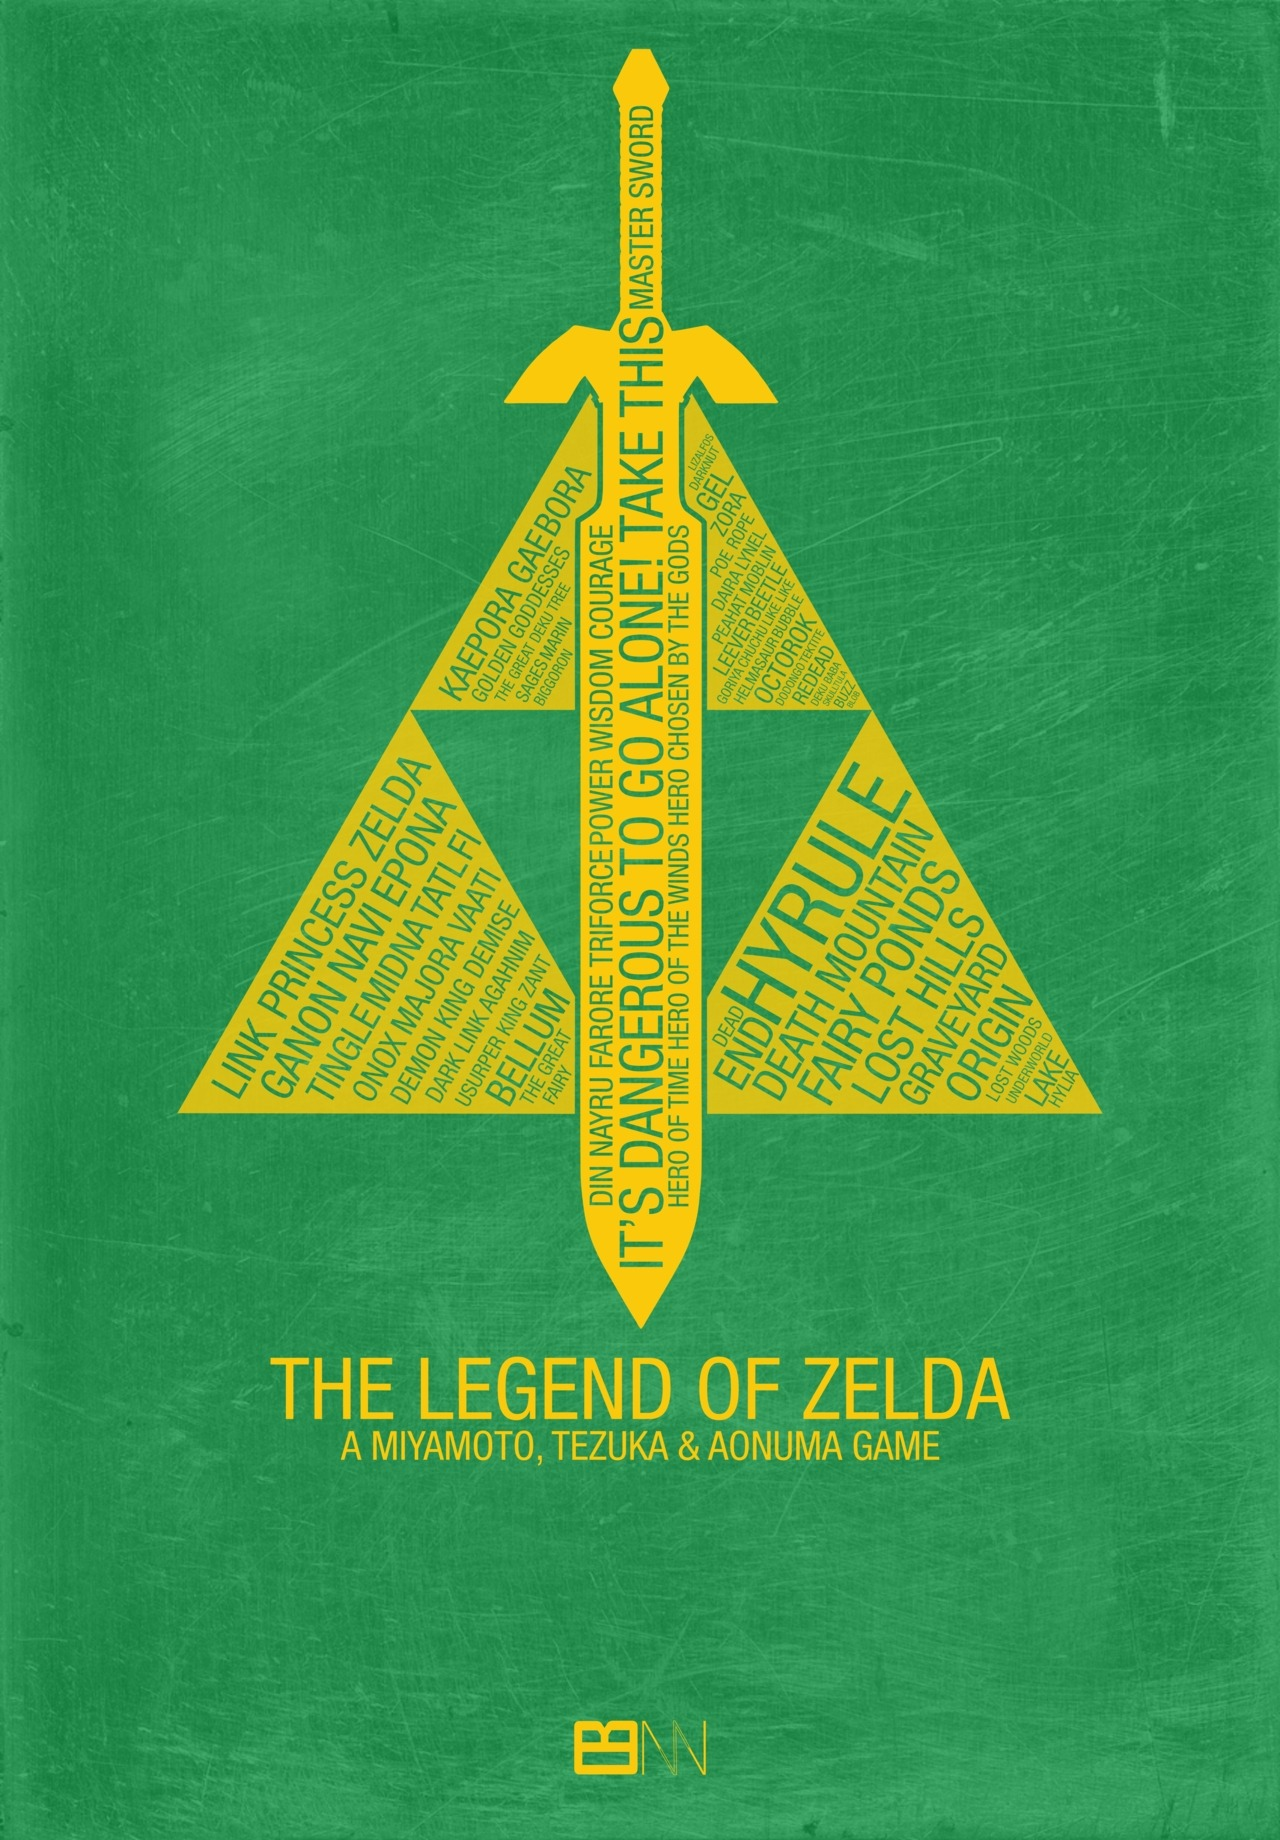 The Legend of Zelda Typography by Kody Christian  T-Shirt | iPhone Case | Laptop Skin | Art Print (via nerdwire)